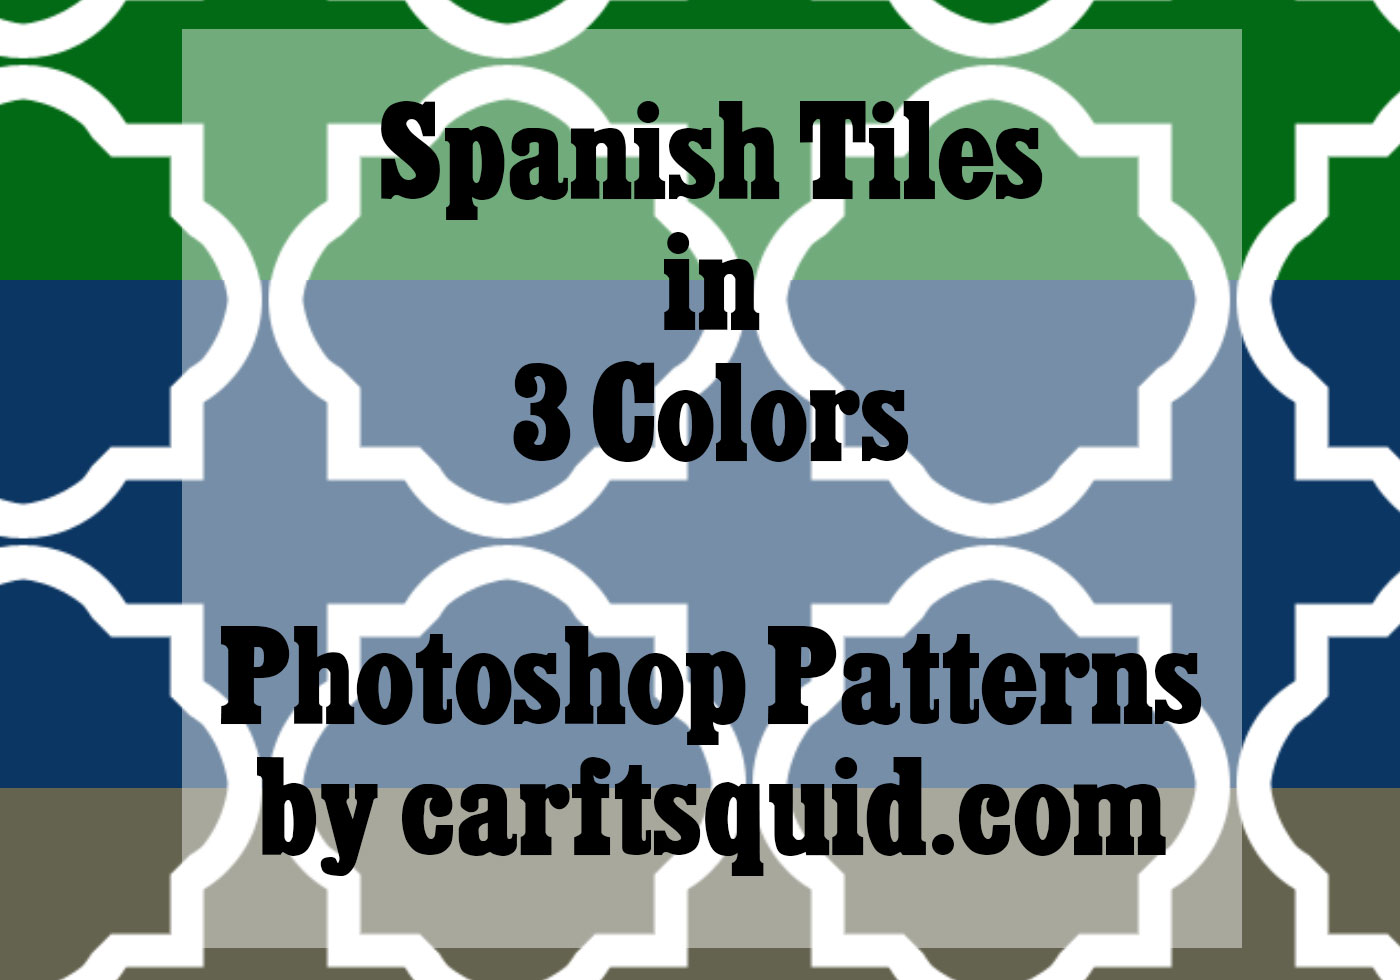 3 Colors Spanish Tiles by Craftsquid - Free Photoshop Brushes at ...